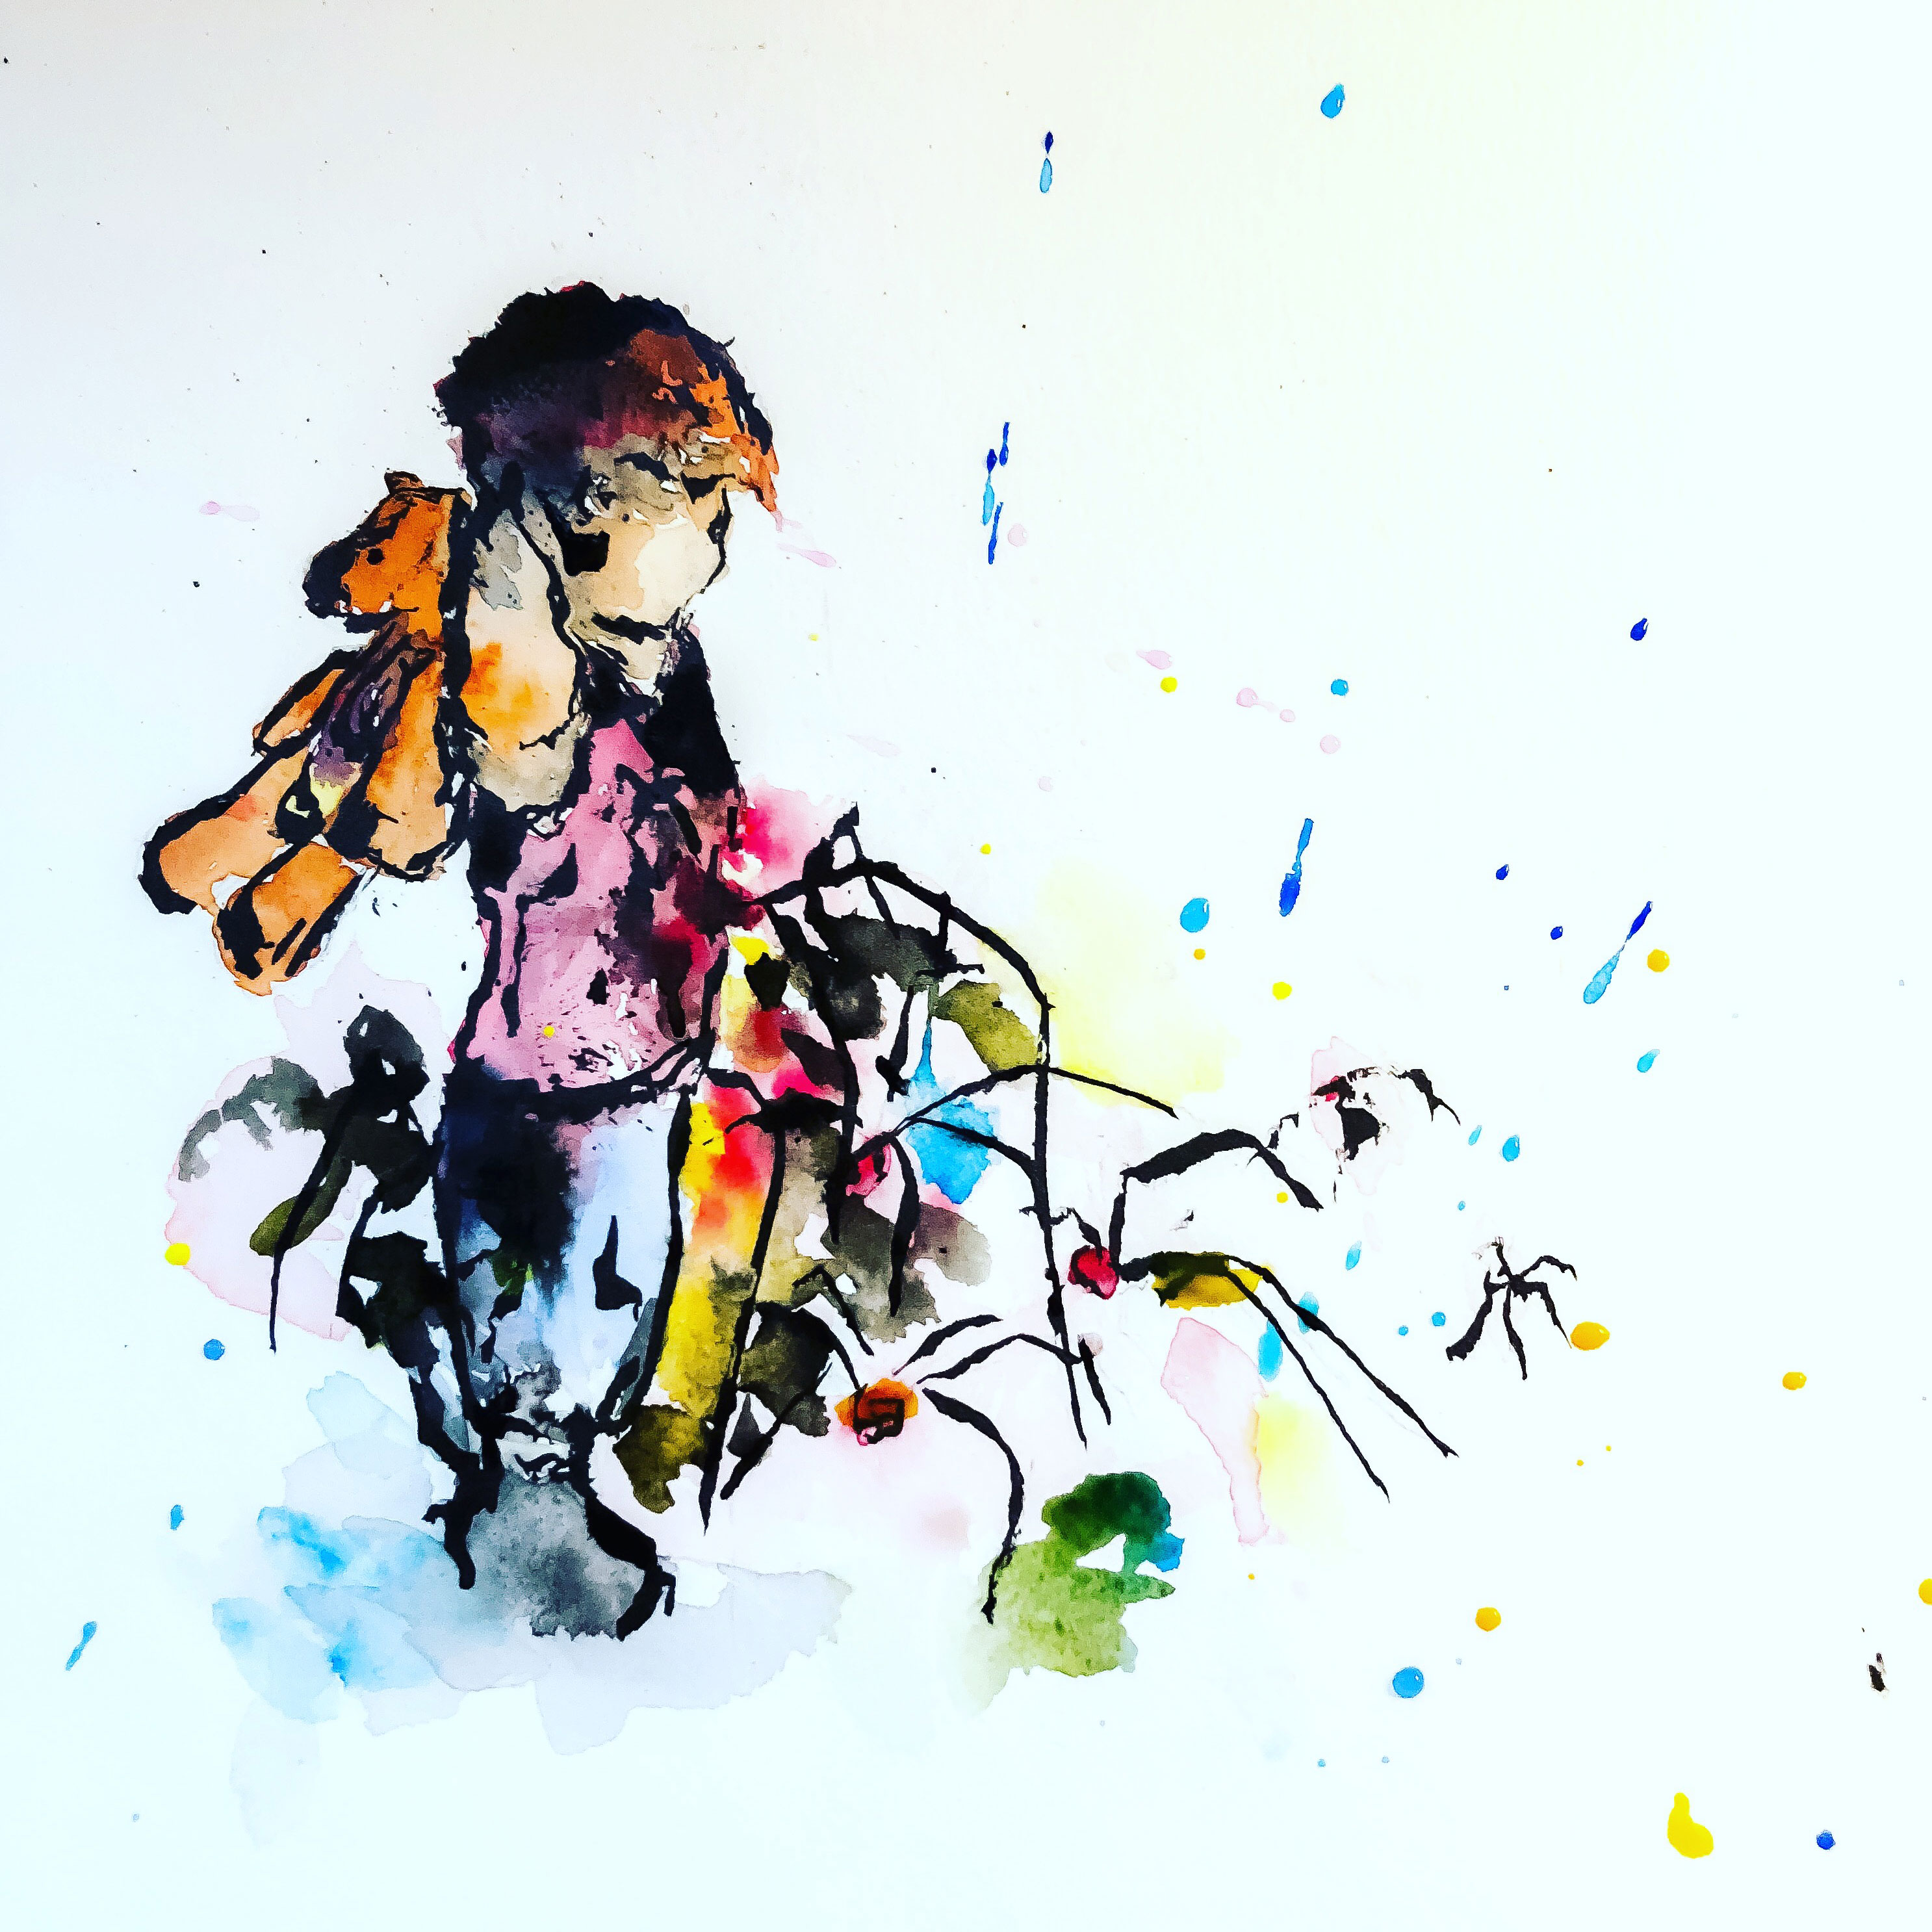 Watercolor Boy with Spiders